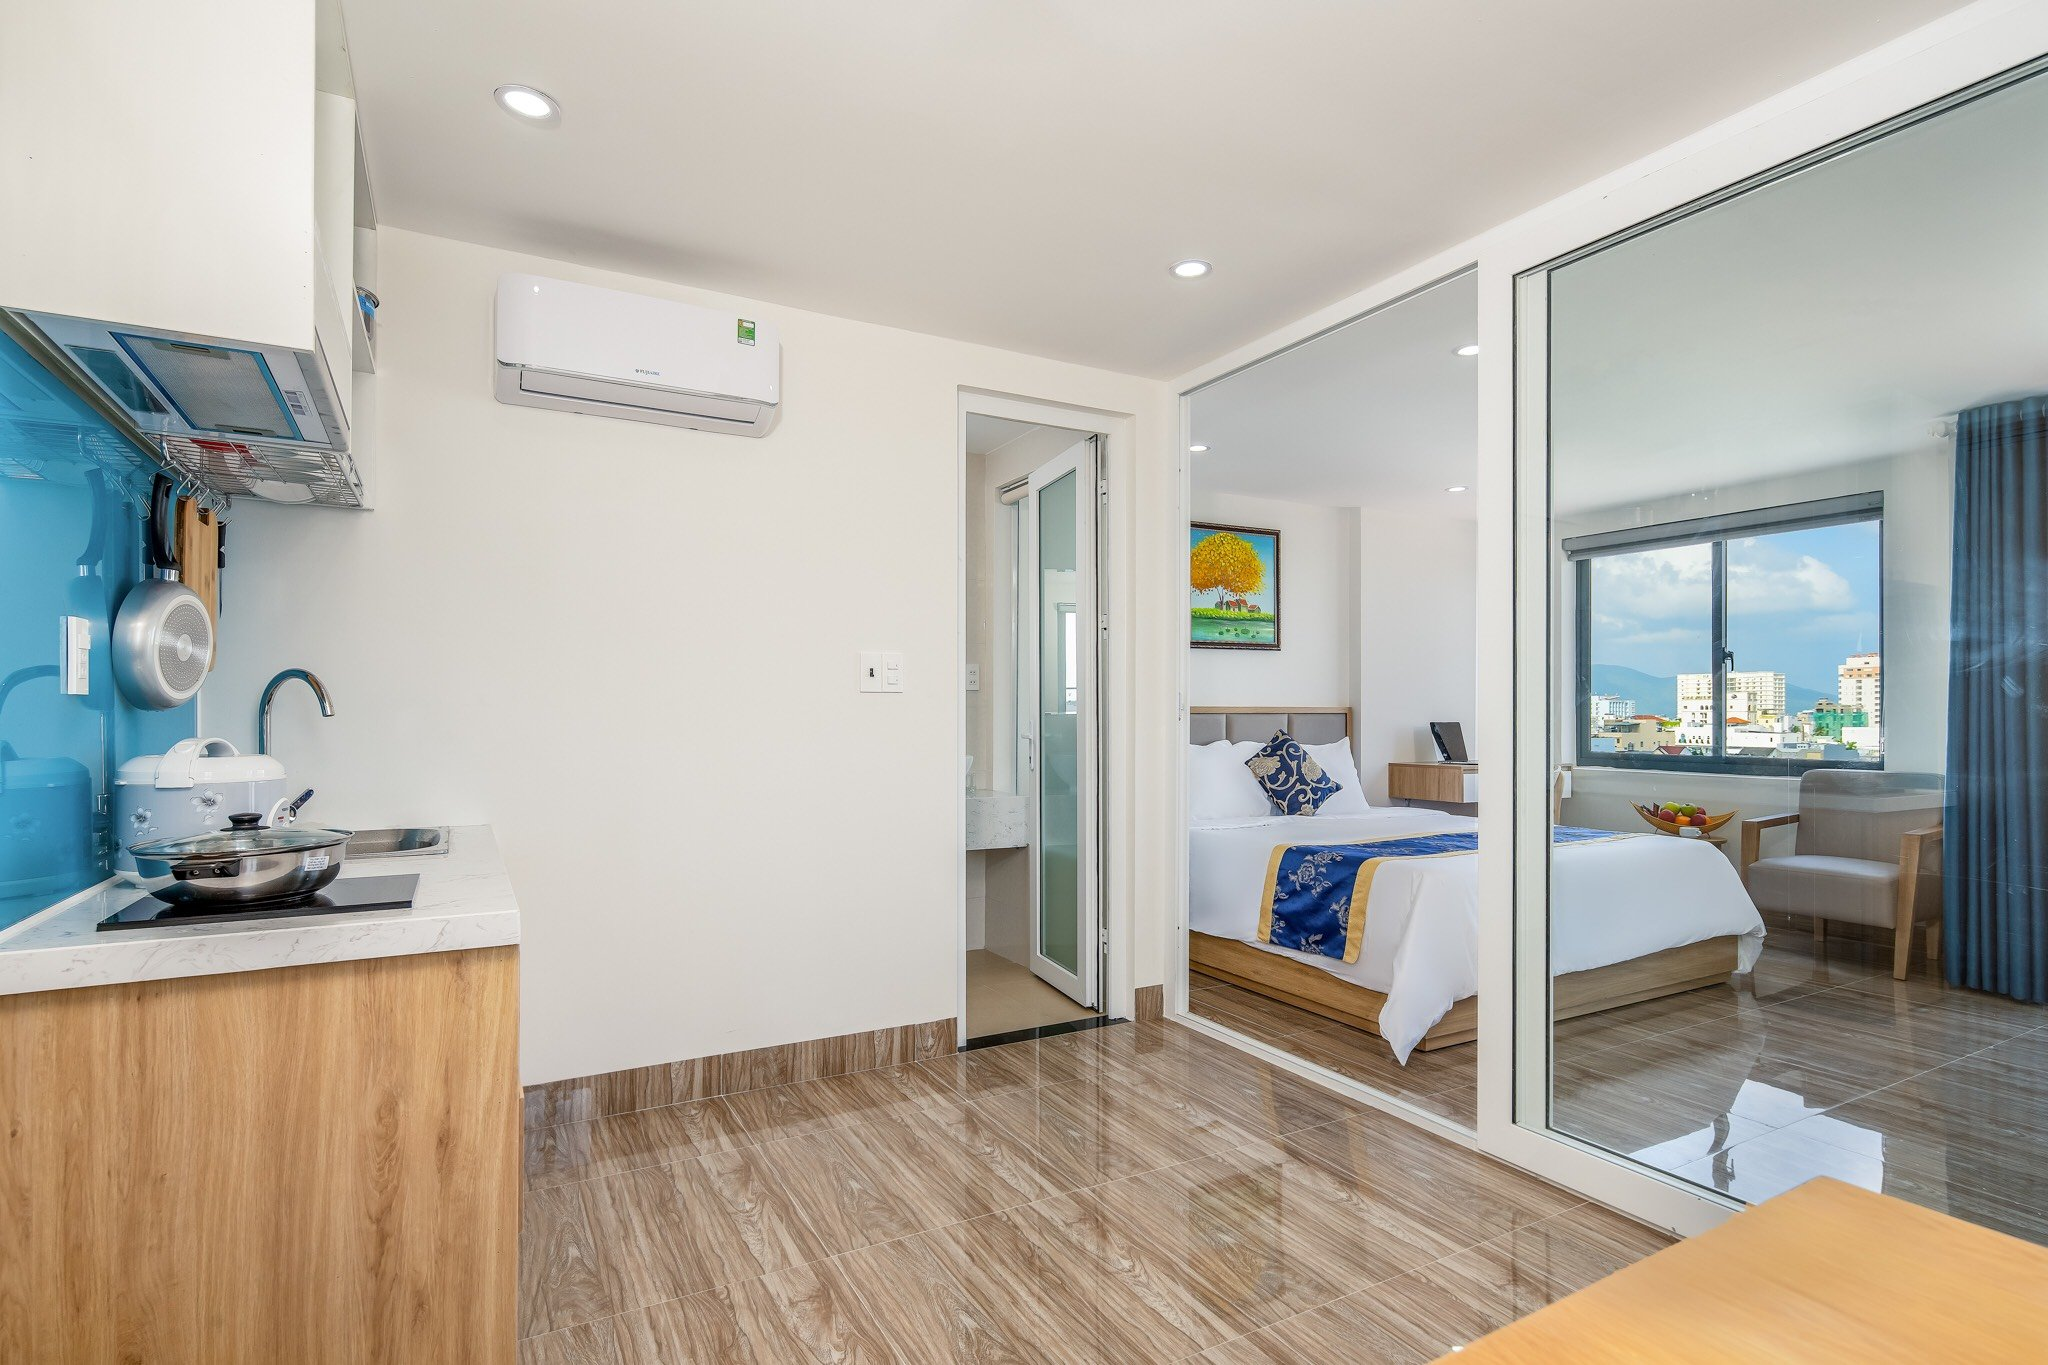 BRAND NEW 1 BEDROOM APARTMENT FOR RENT IN AN THUONG AREA DA NANG